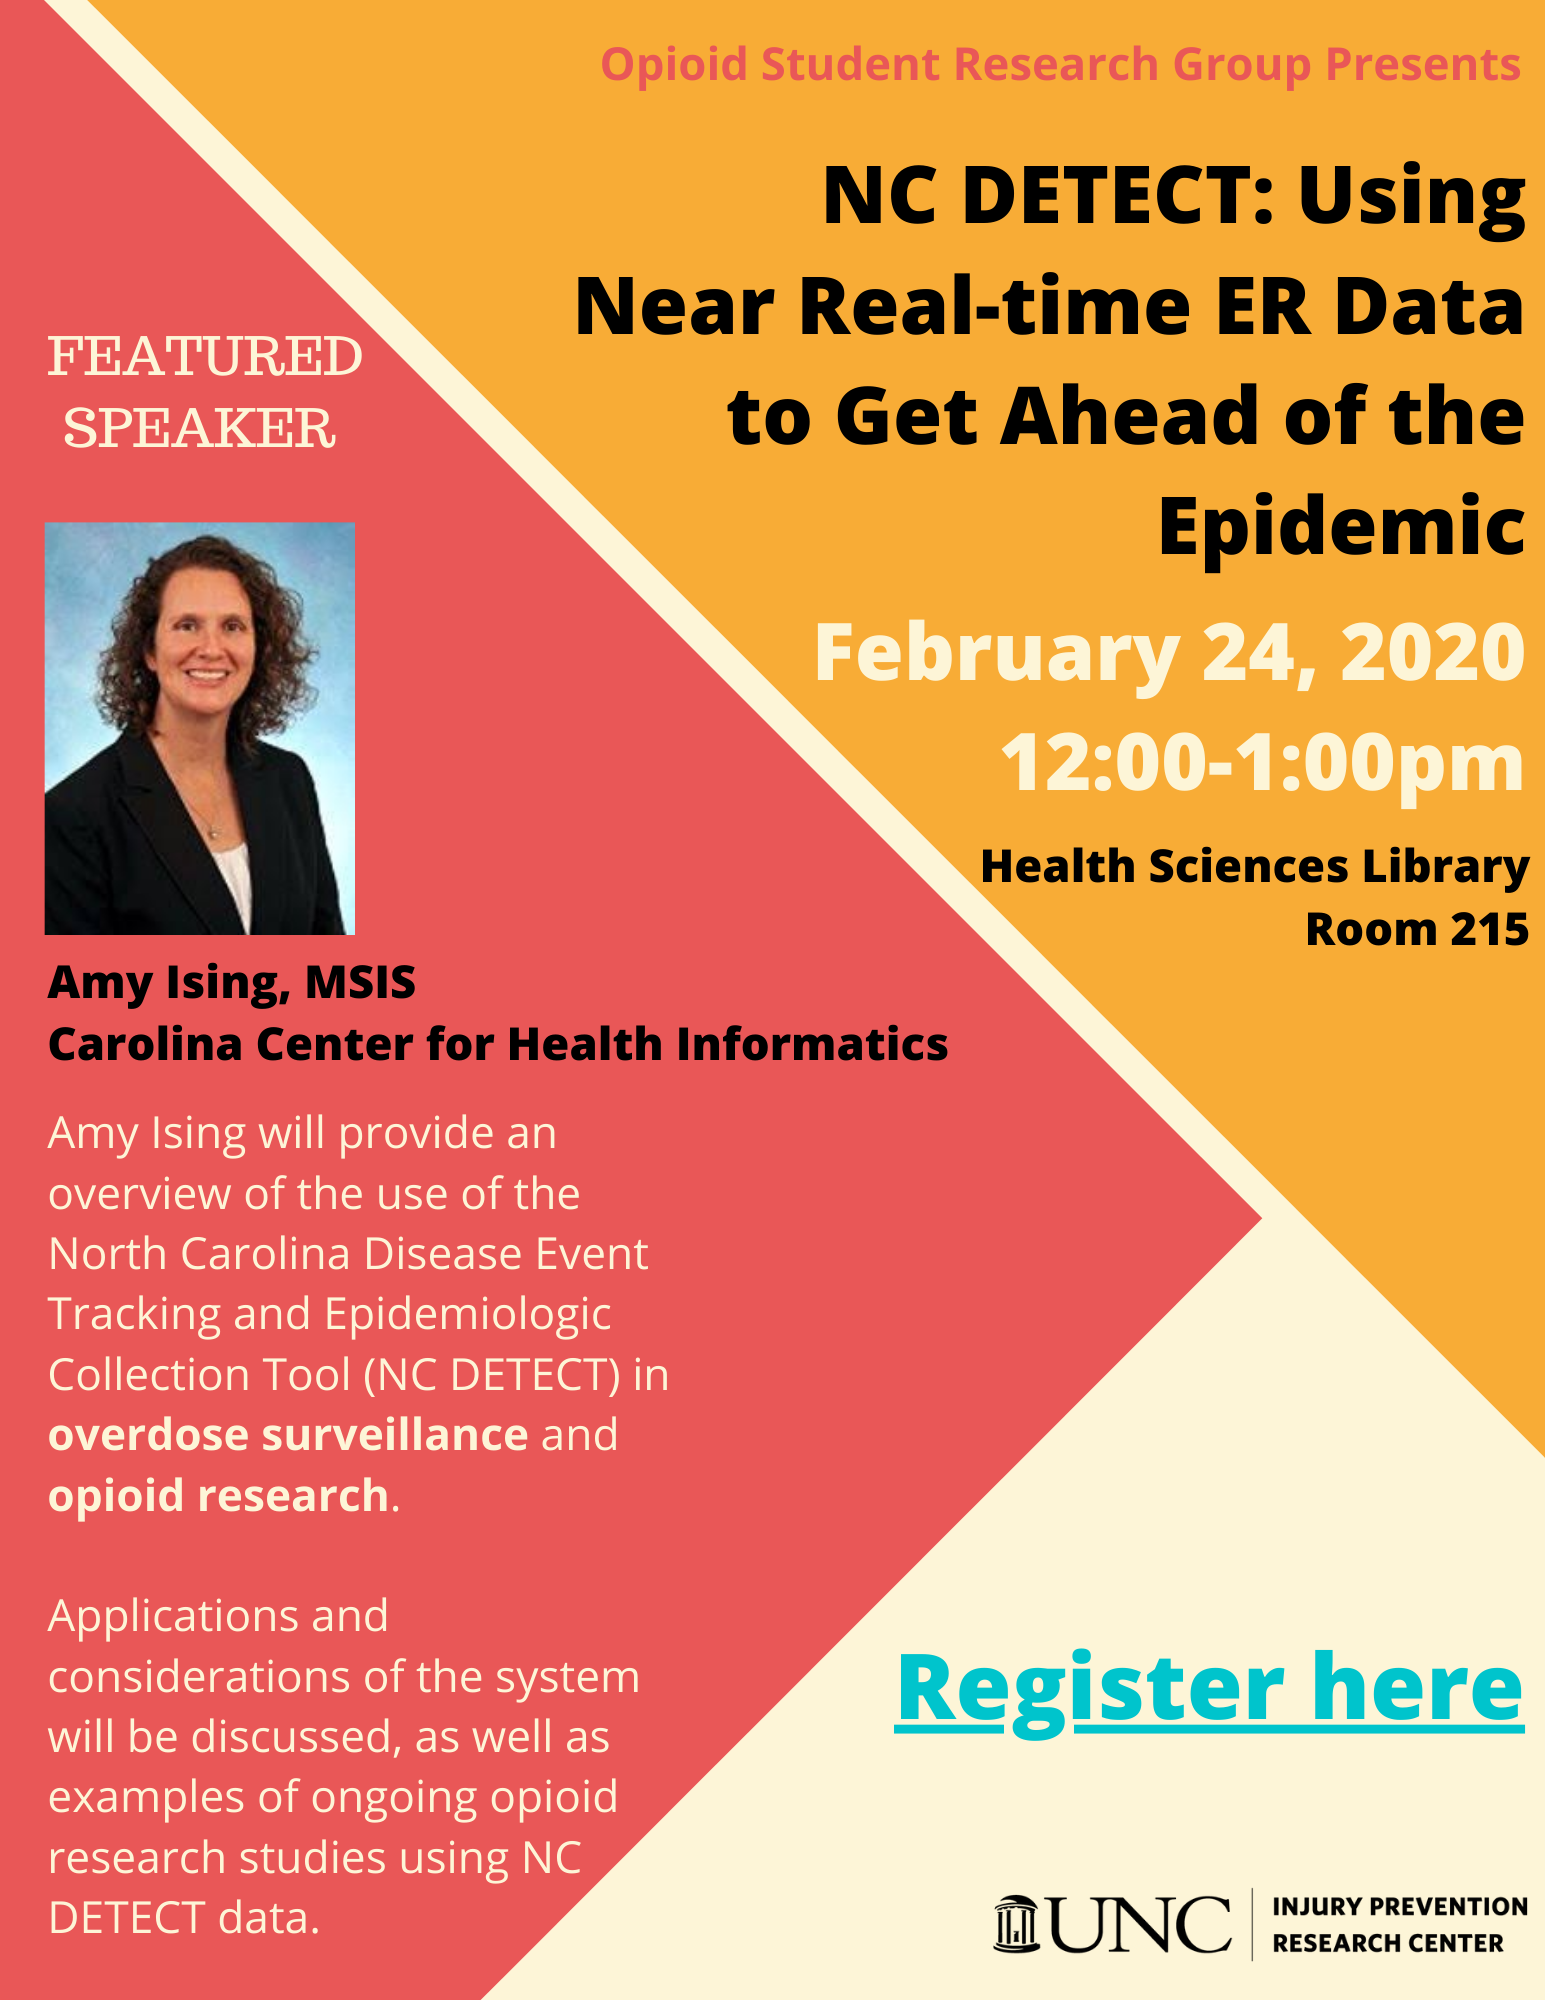 Flyer describing event details. NC DETECT: Using Near Real-time ER Data to Get Ahead of the Epidemic. February 24, 2020. 12:00-1:00pm. Health Sciences Library Room 215. Featured Speaker is Amy Ising, MSIS from Carolina Center for Health Informatics. Amy Ising will provide an overview of the use of the North Carolina Disease Event Tracking and Epidemiologic Collection Tool (NC DETECT) in overdose surveillance and opioid research. Applications and considerations of the system will be discussed, as well as examples of ongoing opioid research studies using NC DETECT data. Register at http://tinyurl.com/thoefml